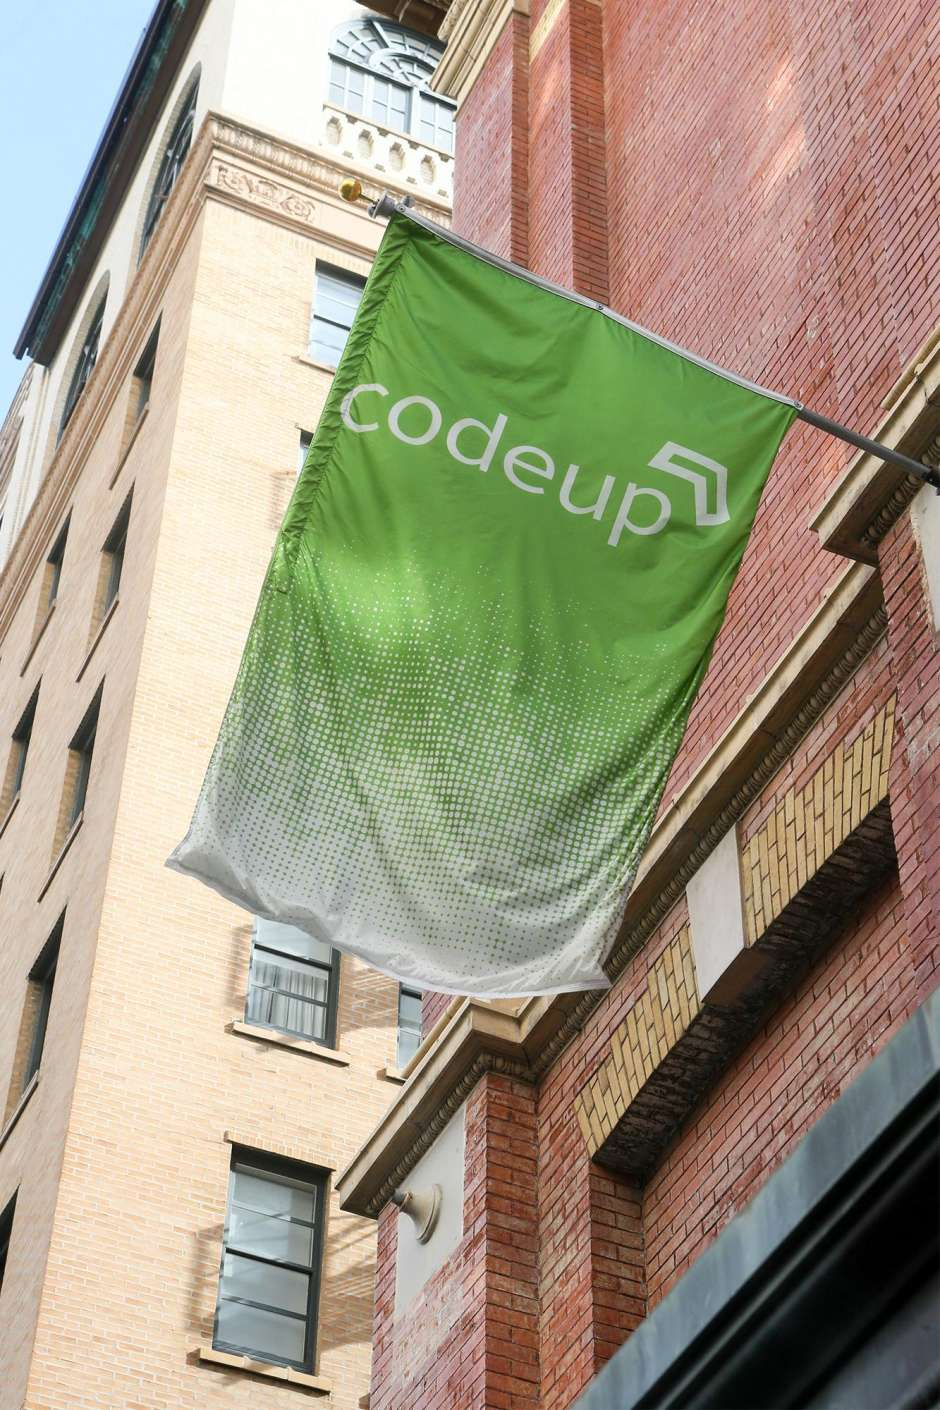 Codeup flag